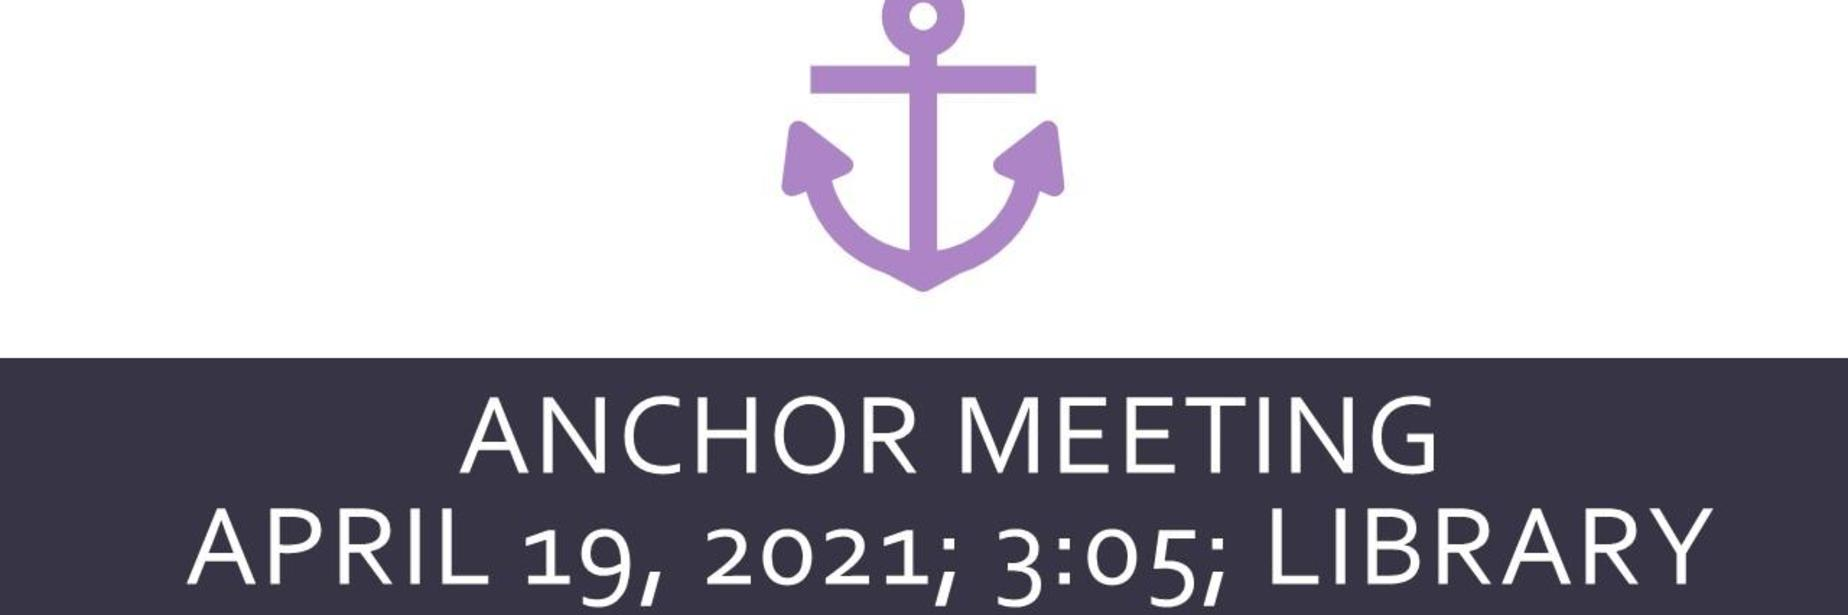 Anchor Meeting April 19, 2021; 3:05; Library